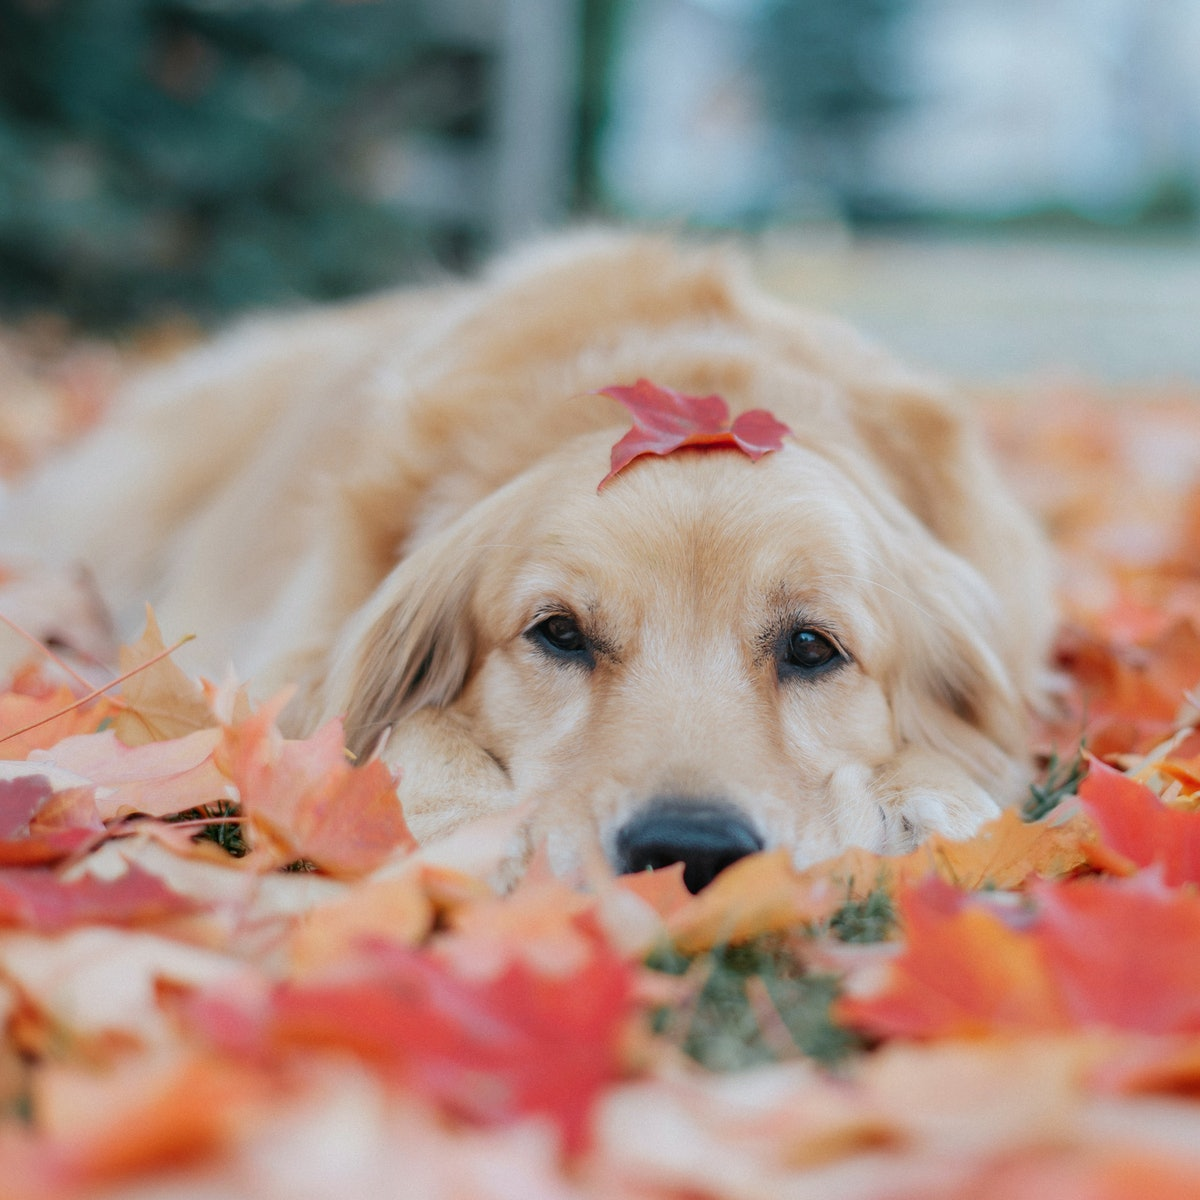 A golden retriever sits in a pile of fall leaves and poses with one on its head.